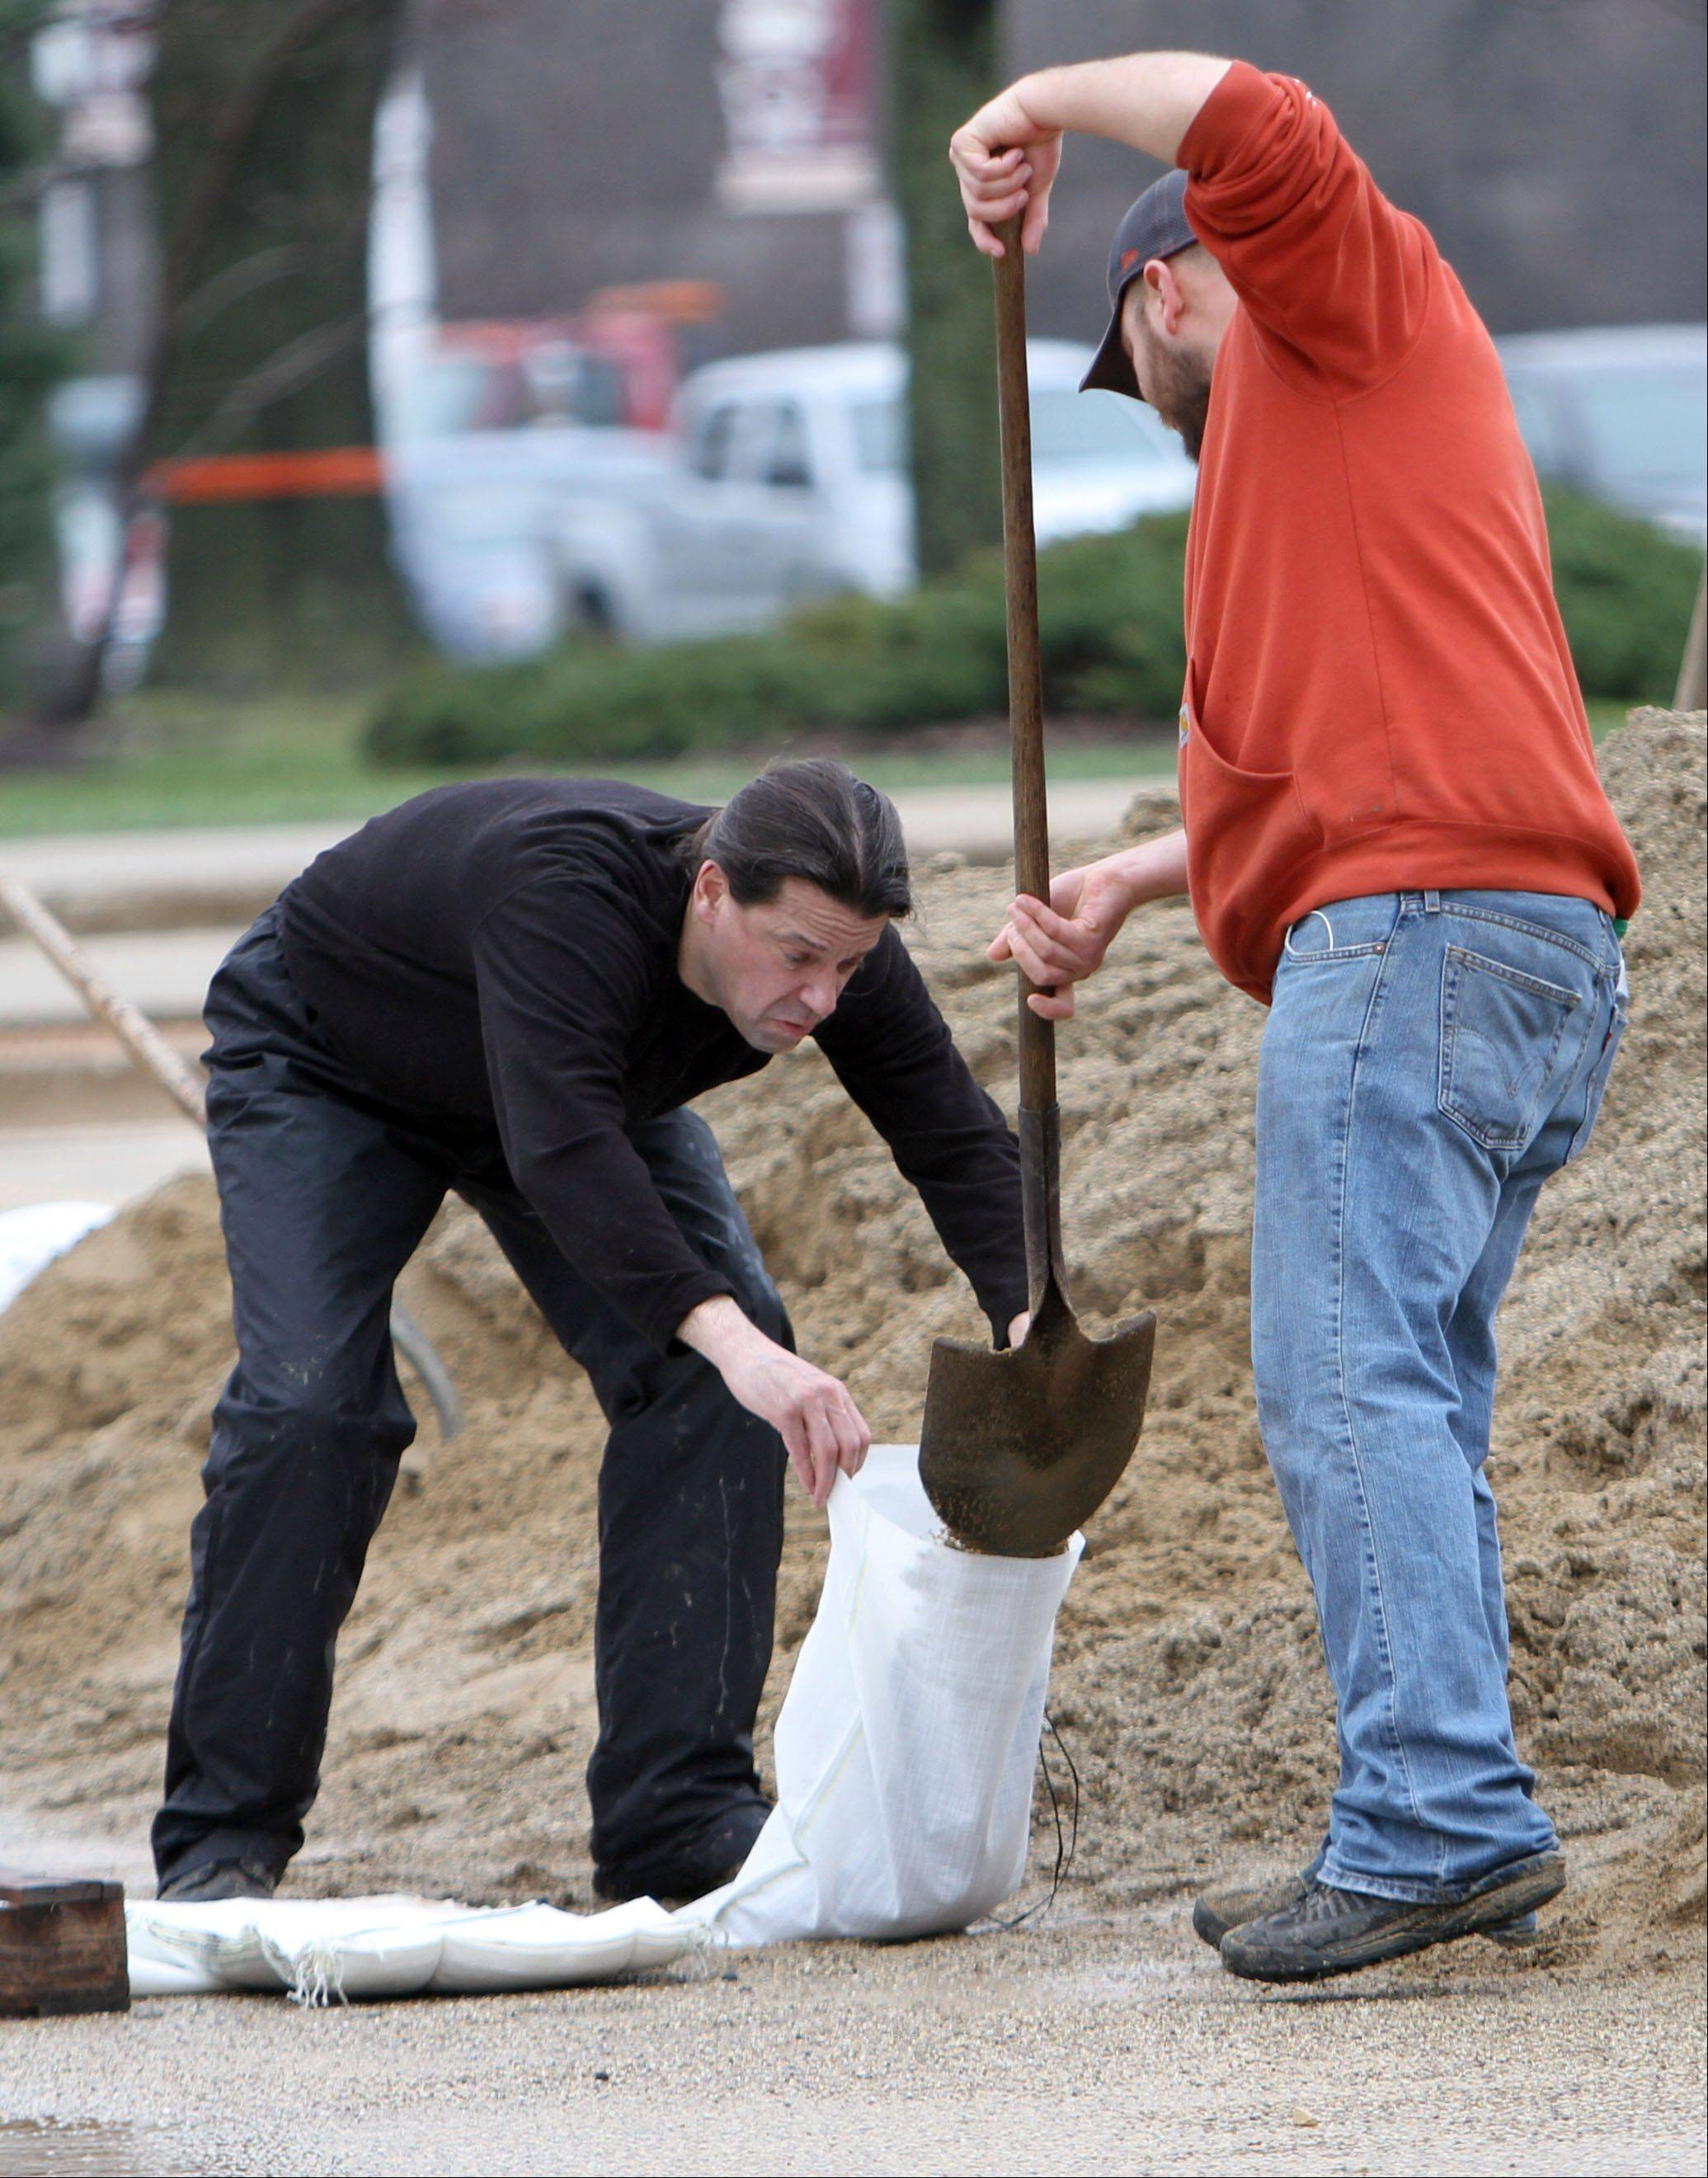 Steve Lundy/slundy@dailyherald.comVolunteers Mark Horvat, left, and David Gonzalez, both of Gurnee, help sand bag in front of Viking School in preparation for flooding in Gurnee Thursday morning.